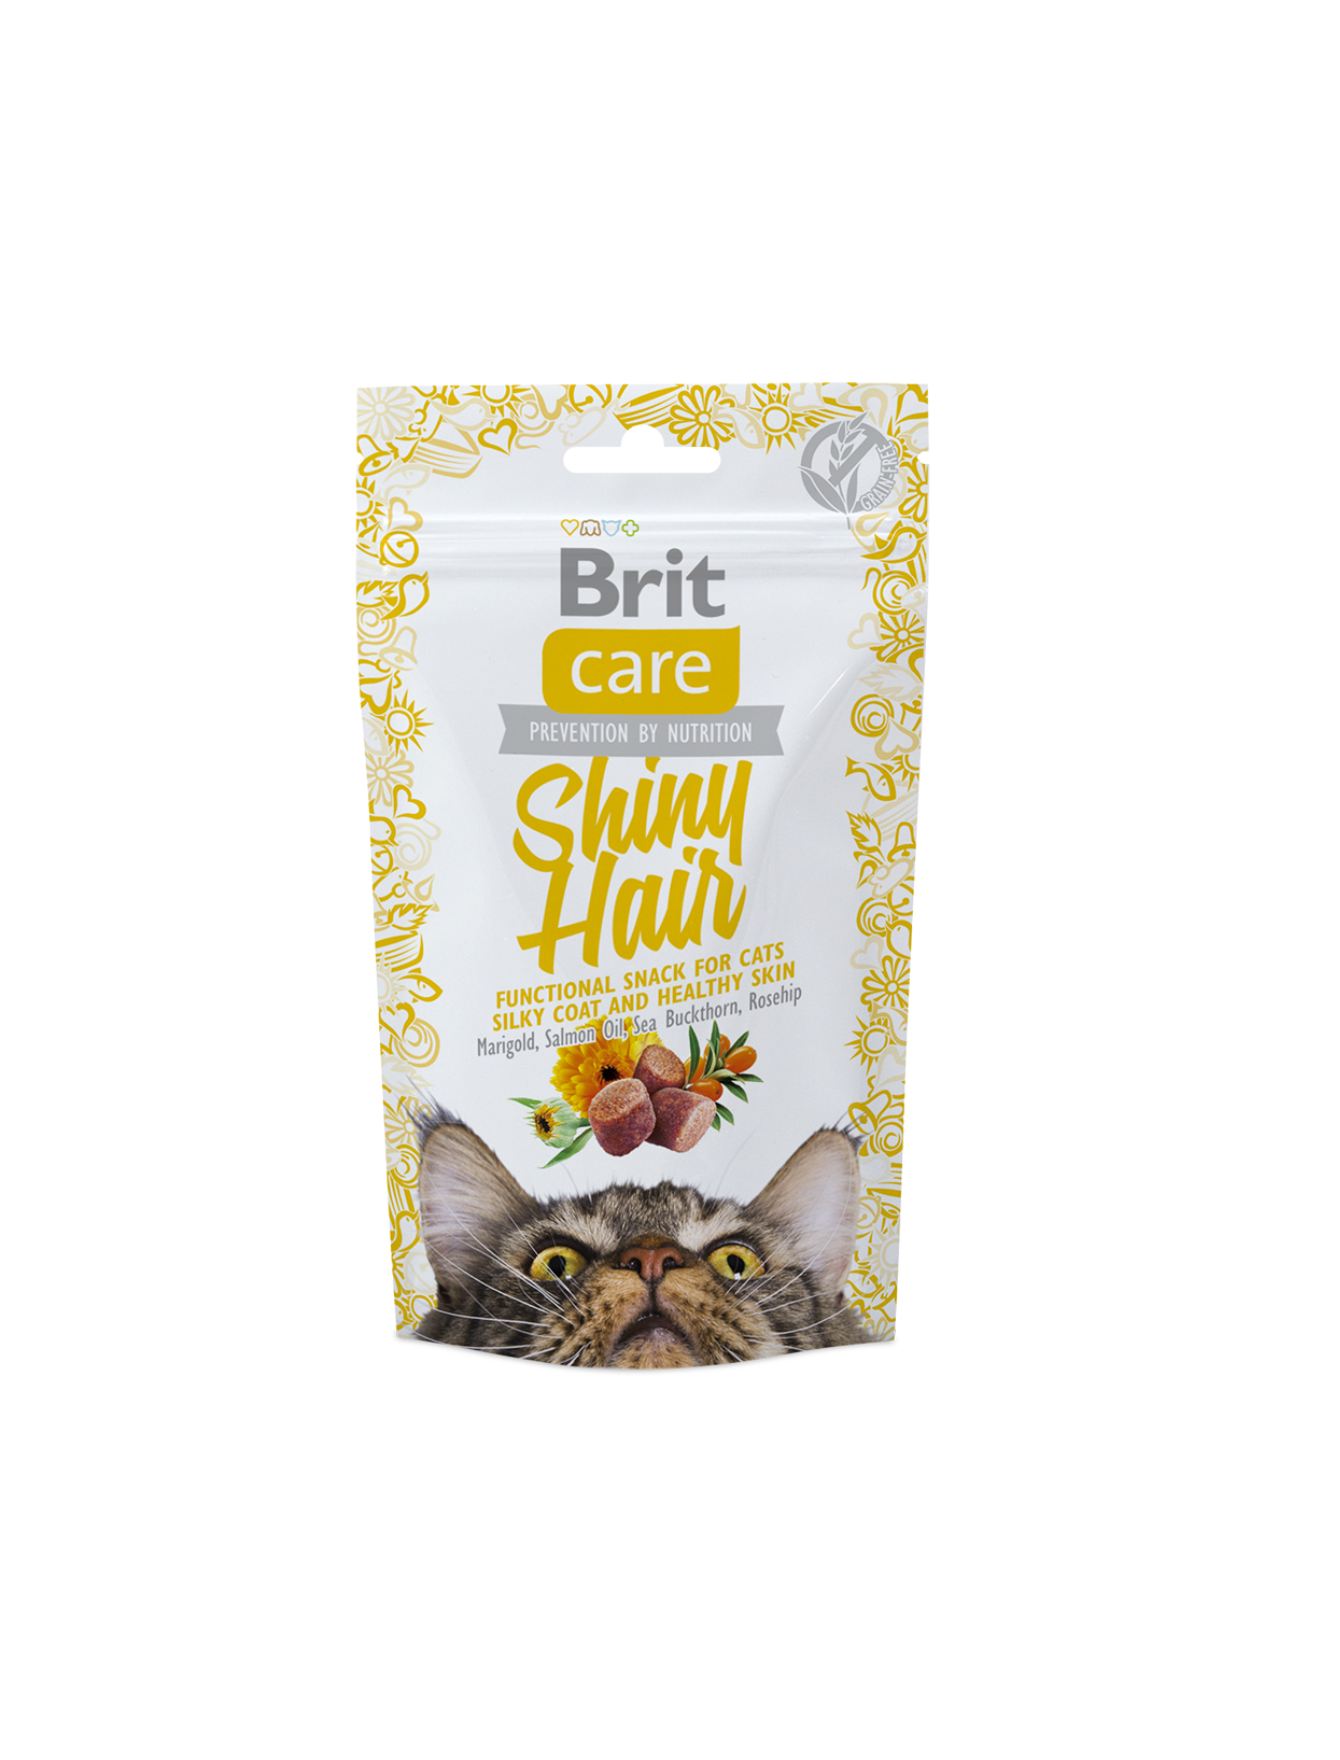 Brit Care Shiny Hair Cat Snack 50g | Waggymeal Online Pet Store Malaysia